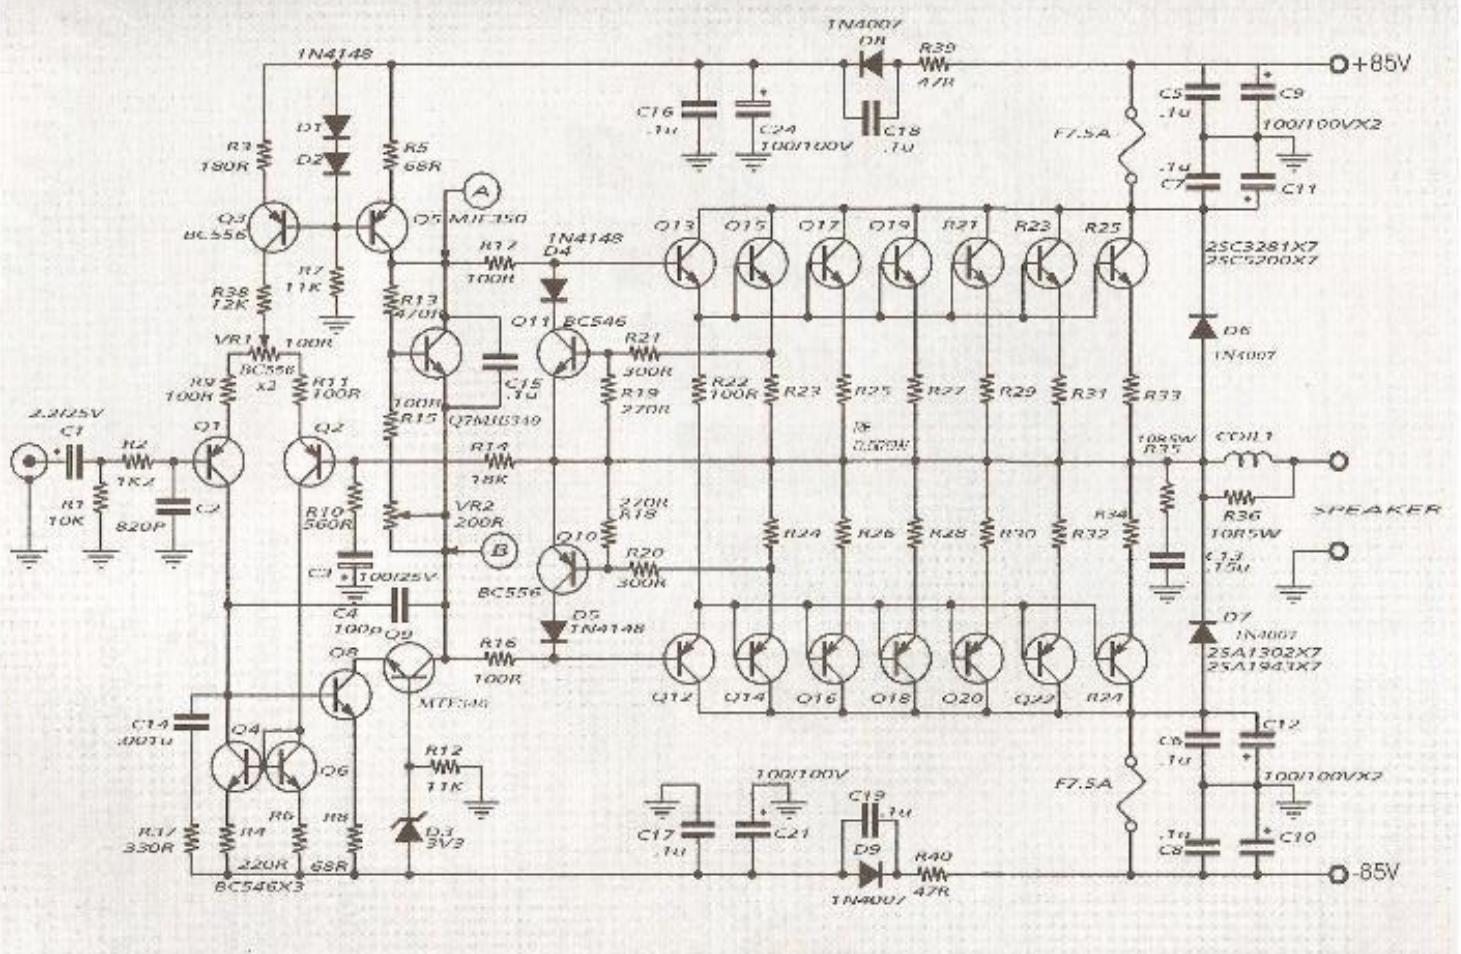 High Power Audio Amplifier Circuit Wiring Library Hi Fi Electronic Circuits And Diagram 600w With 85v 8ohms